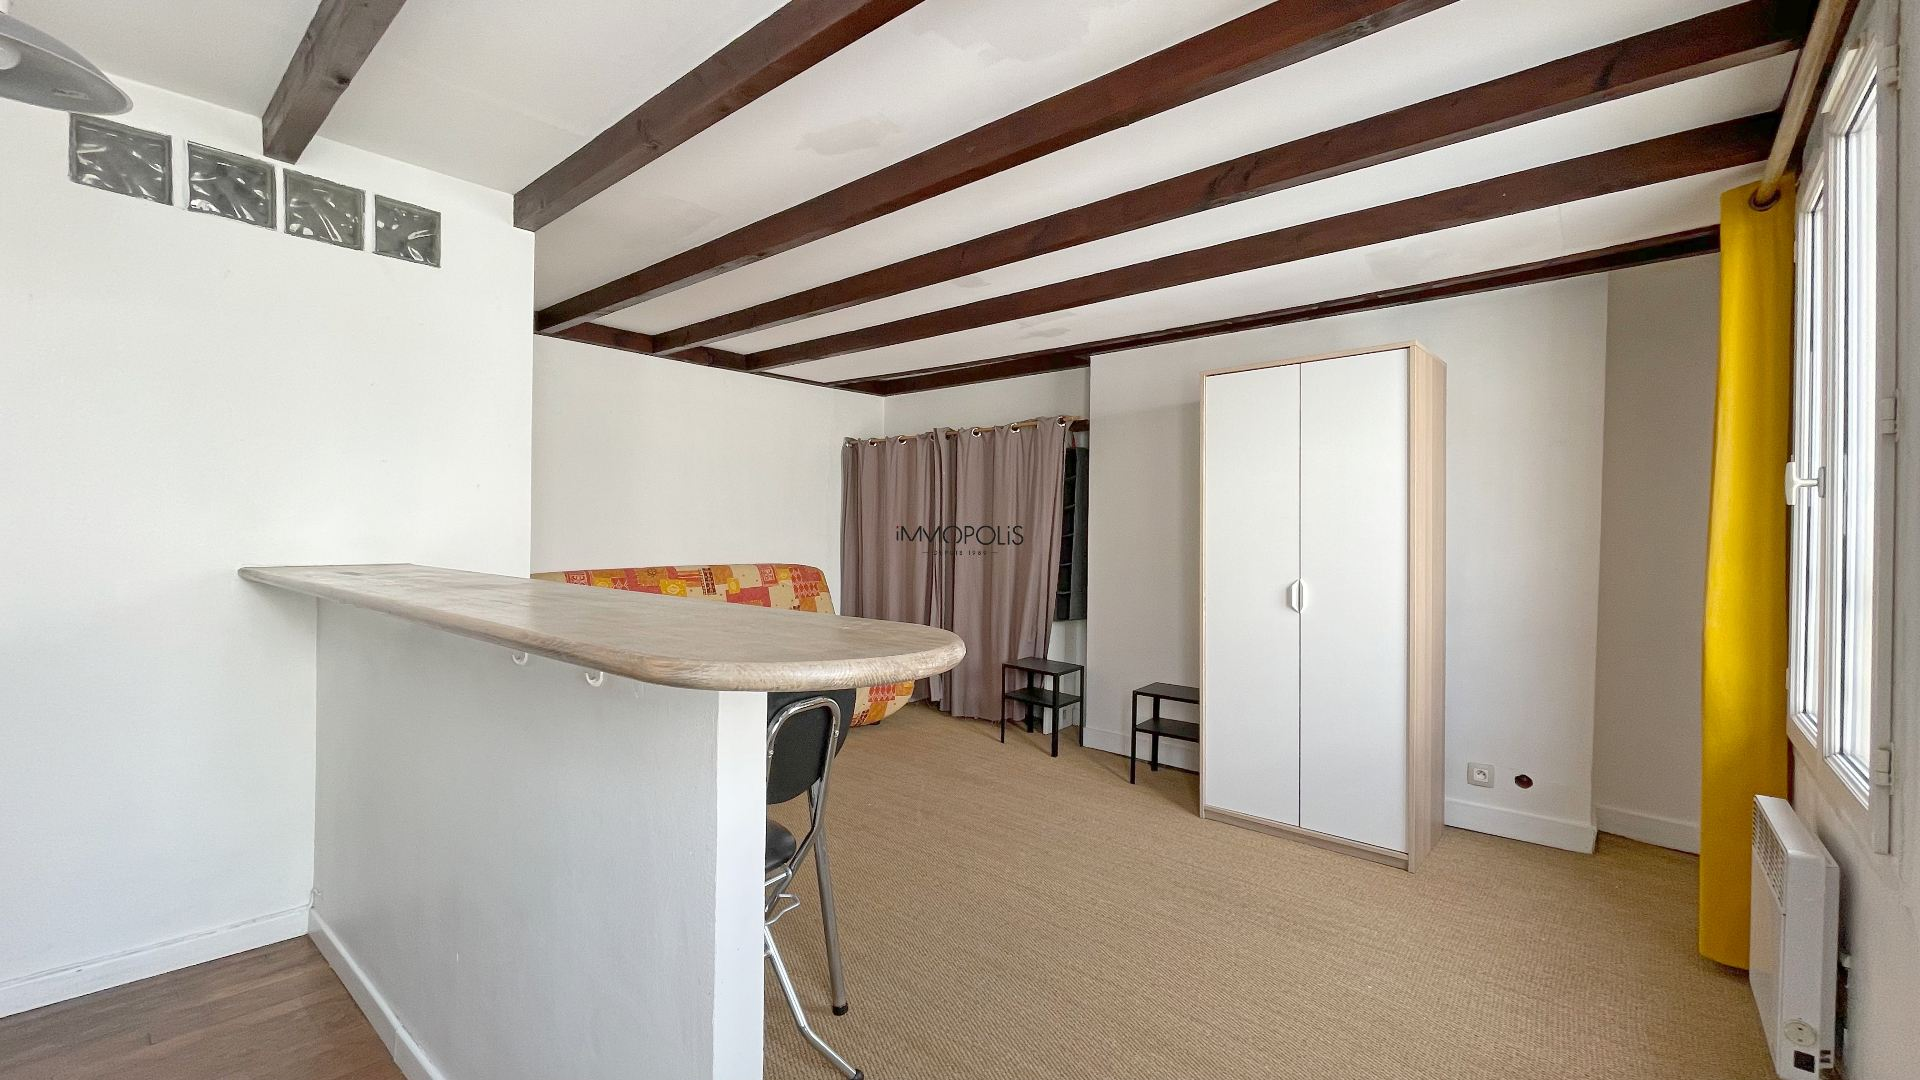 Montmartre, Abbesses, Beautiful studio in good condition in 4th and last floor, ceiling beams, quiet, on unobscured courtyard without opposite! 5